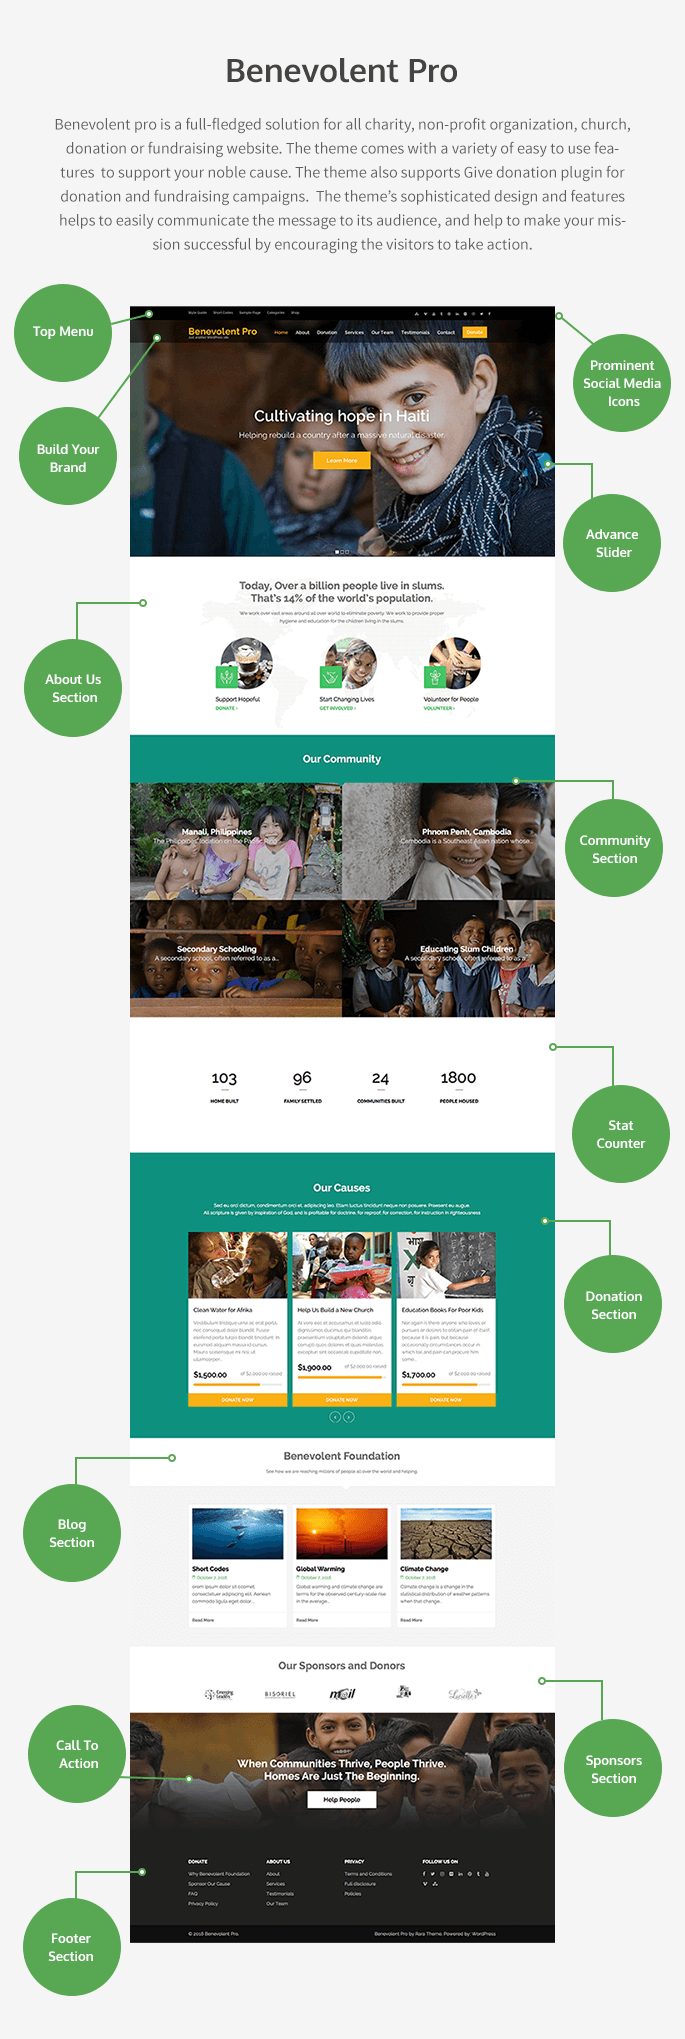 features of Benevolent Pro WordPress Theme